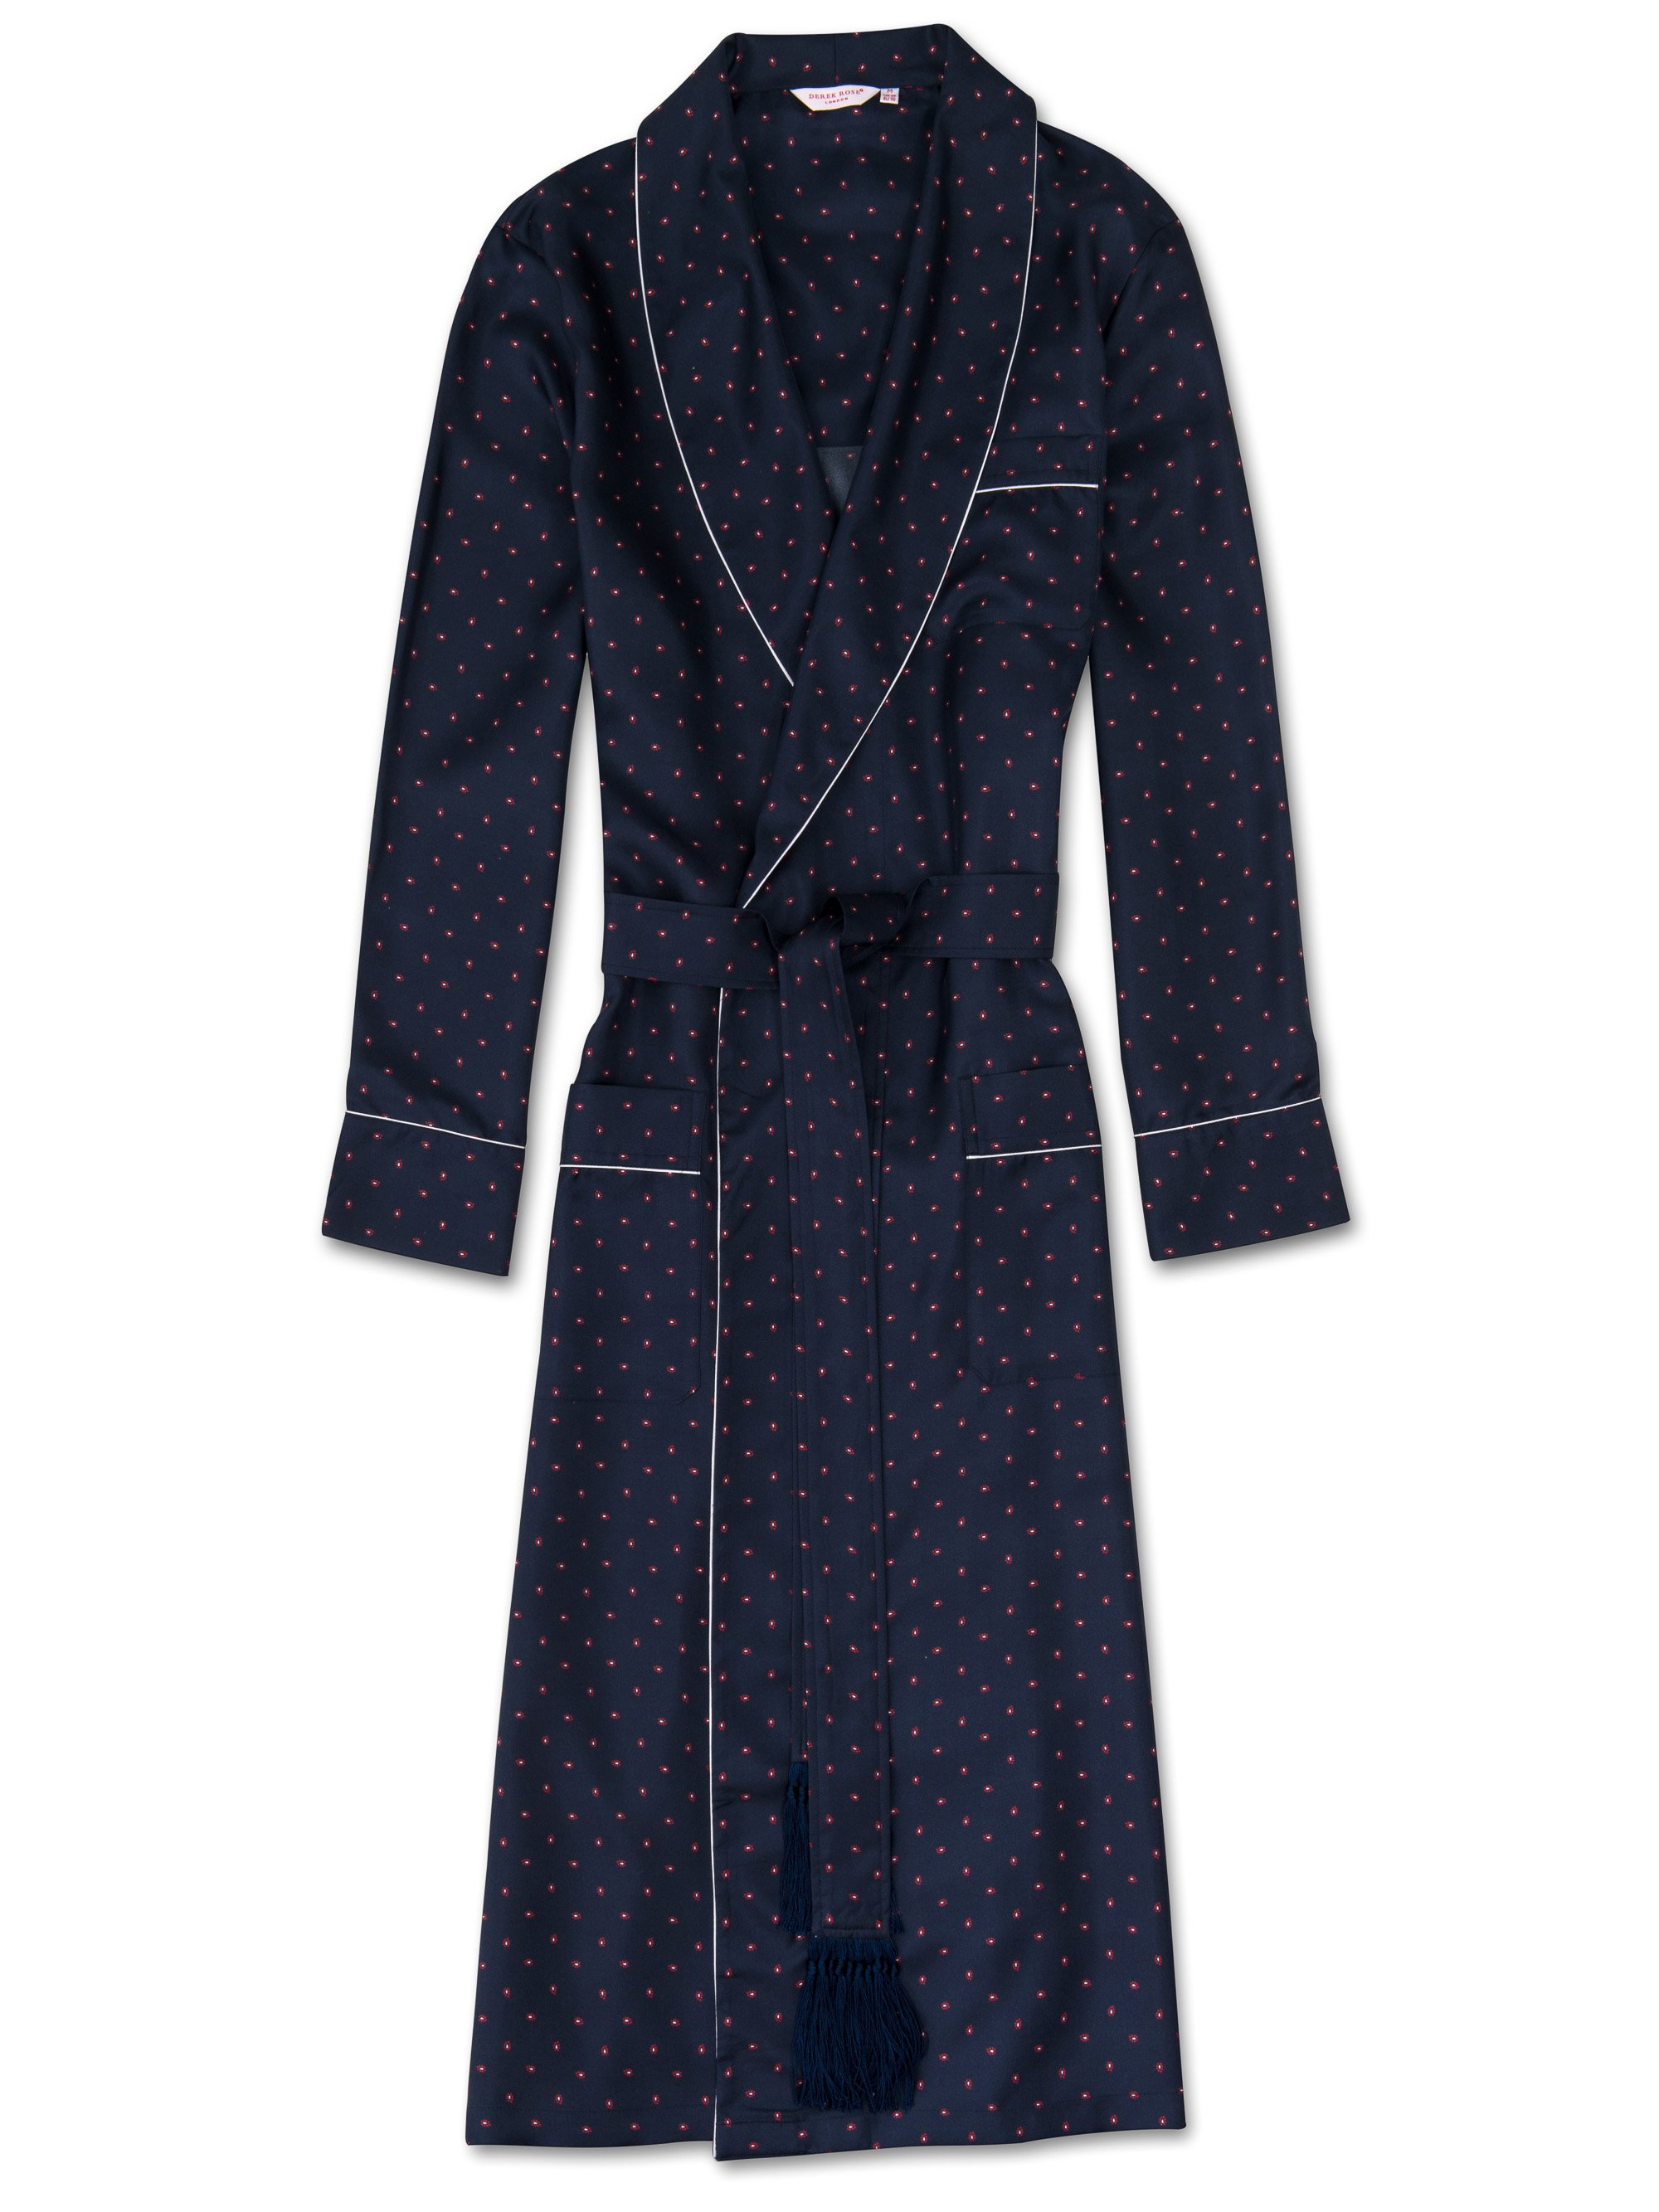 Men's Tasseled Belt Dressing Gown Otis 10 Pure Silk Navy